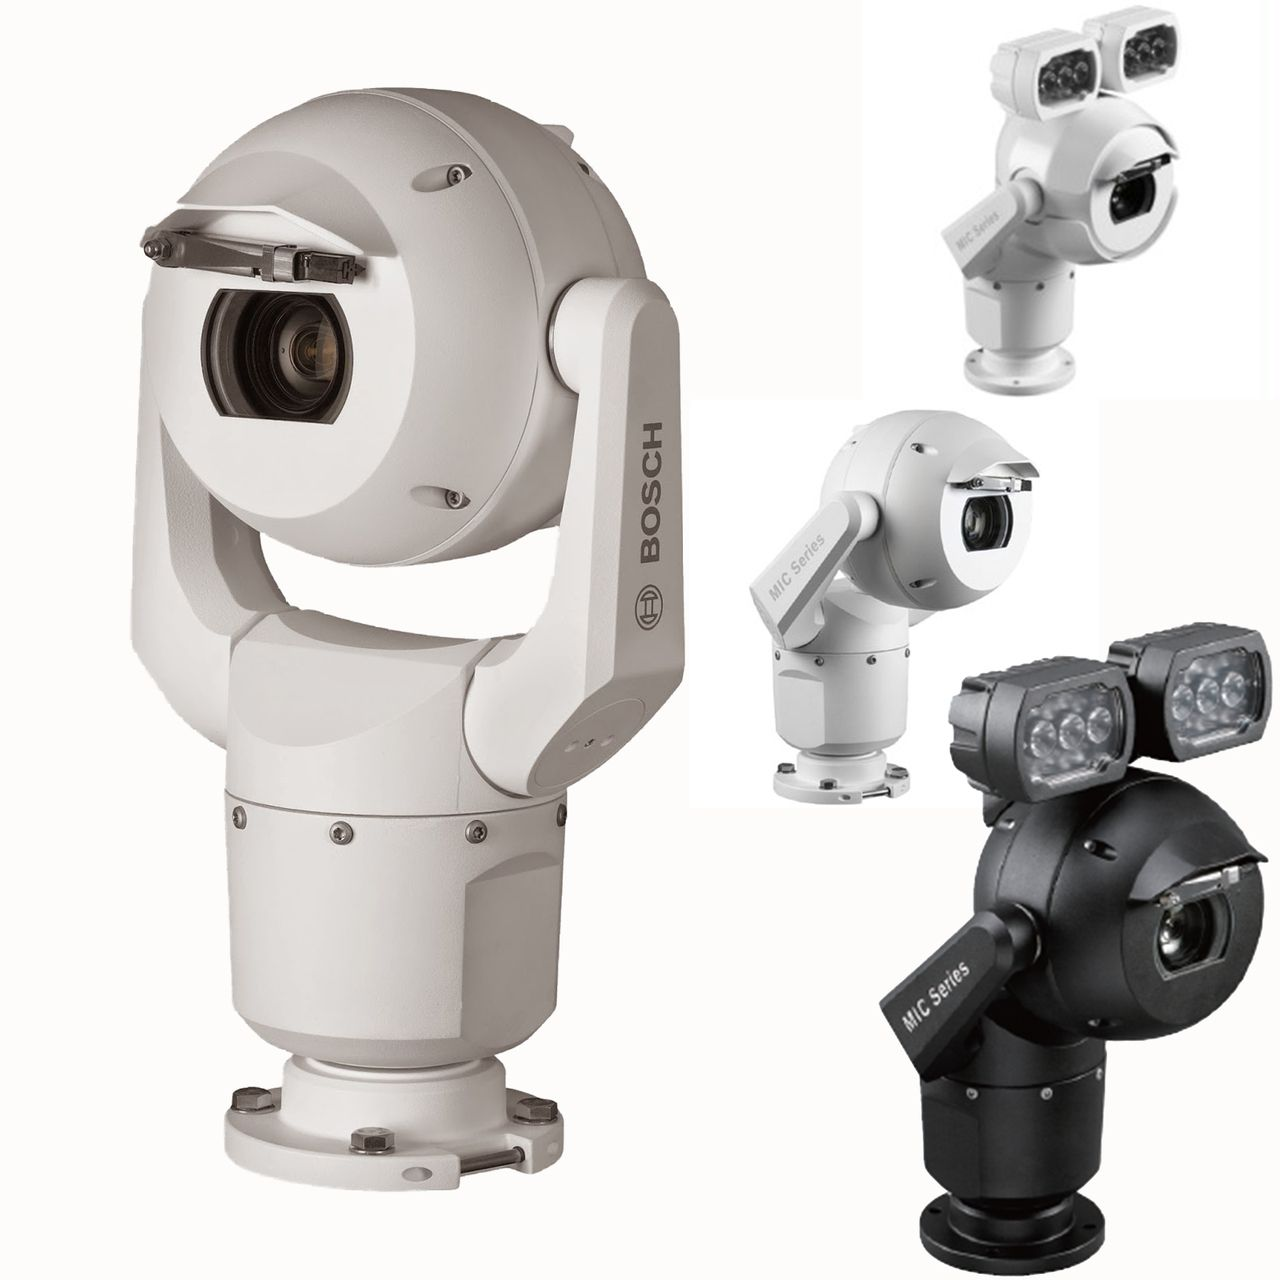 A2z security cameras has your bosch security system needs check out bosch mic 7000 ip ptz camera dynamic hd 1080p 30x cheapraybanclubmaster Gallery